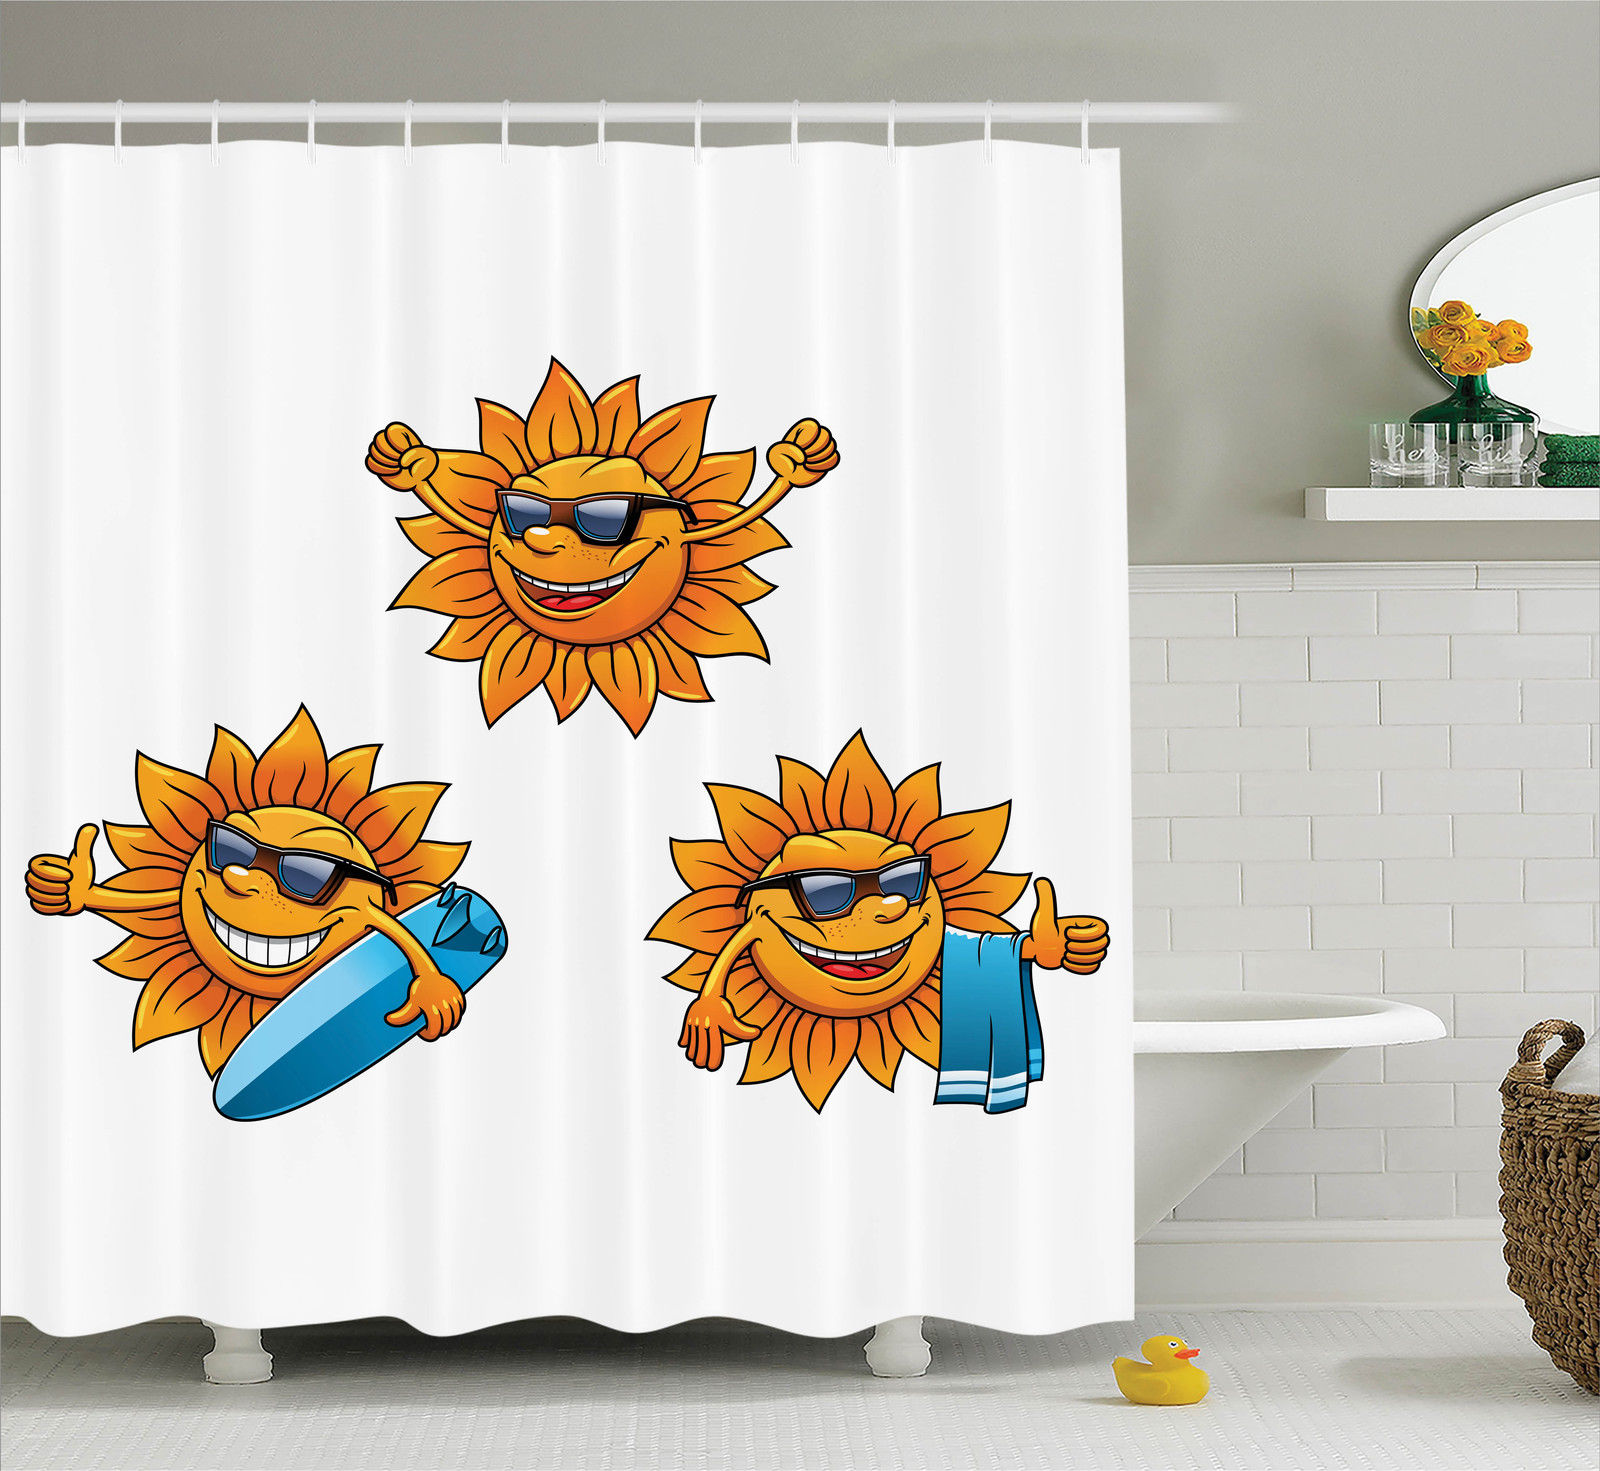 Cartoon Decor Shower Curtain Set, Surf Sun Characters Wearing Shades And Surfboards Fun Hippie Summer Cartoon Kids Decor, Bathroom Accessories, 69W X 70L Inches, By Ambesonne